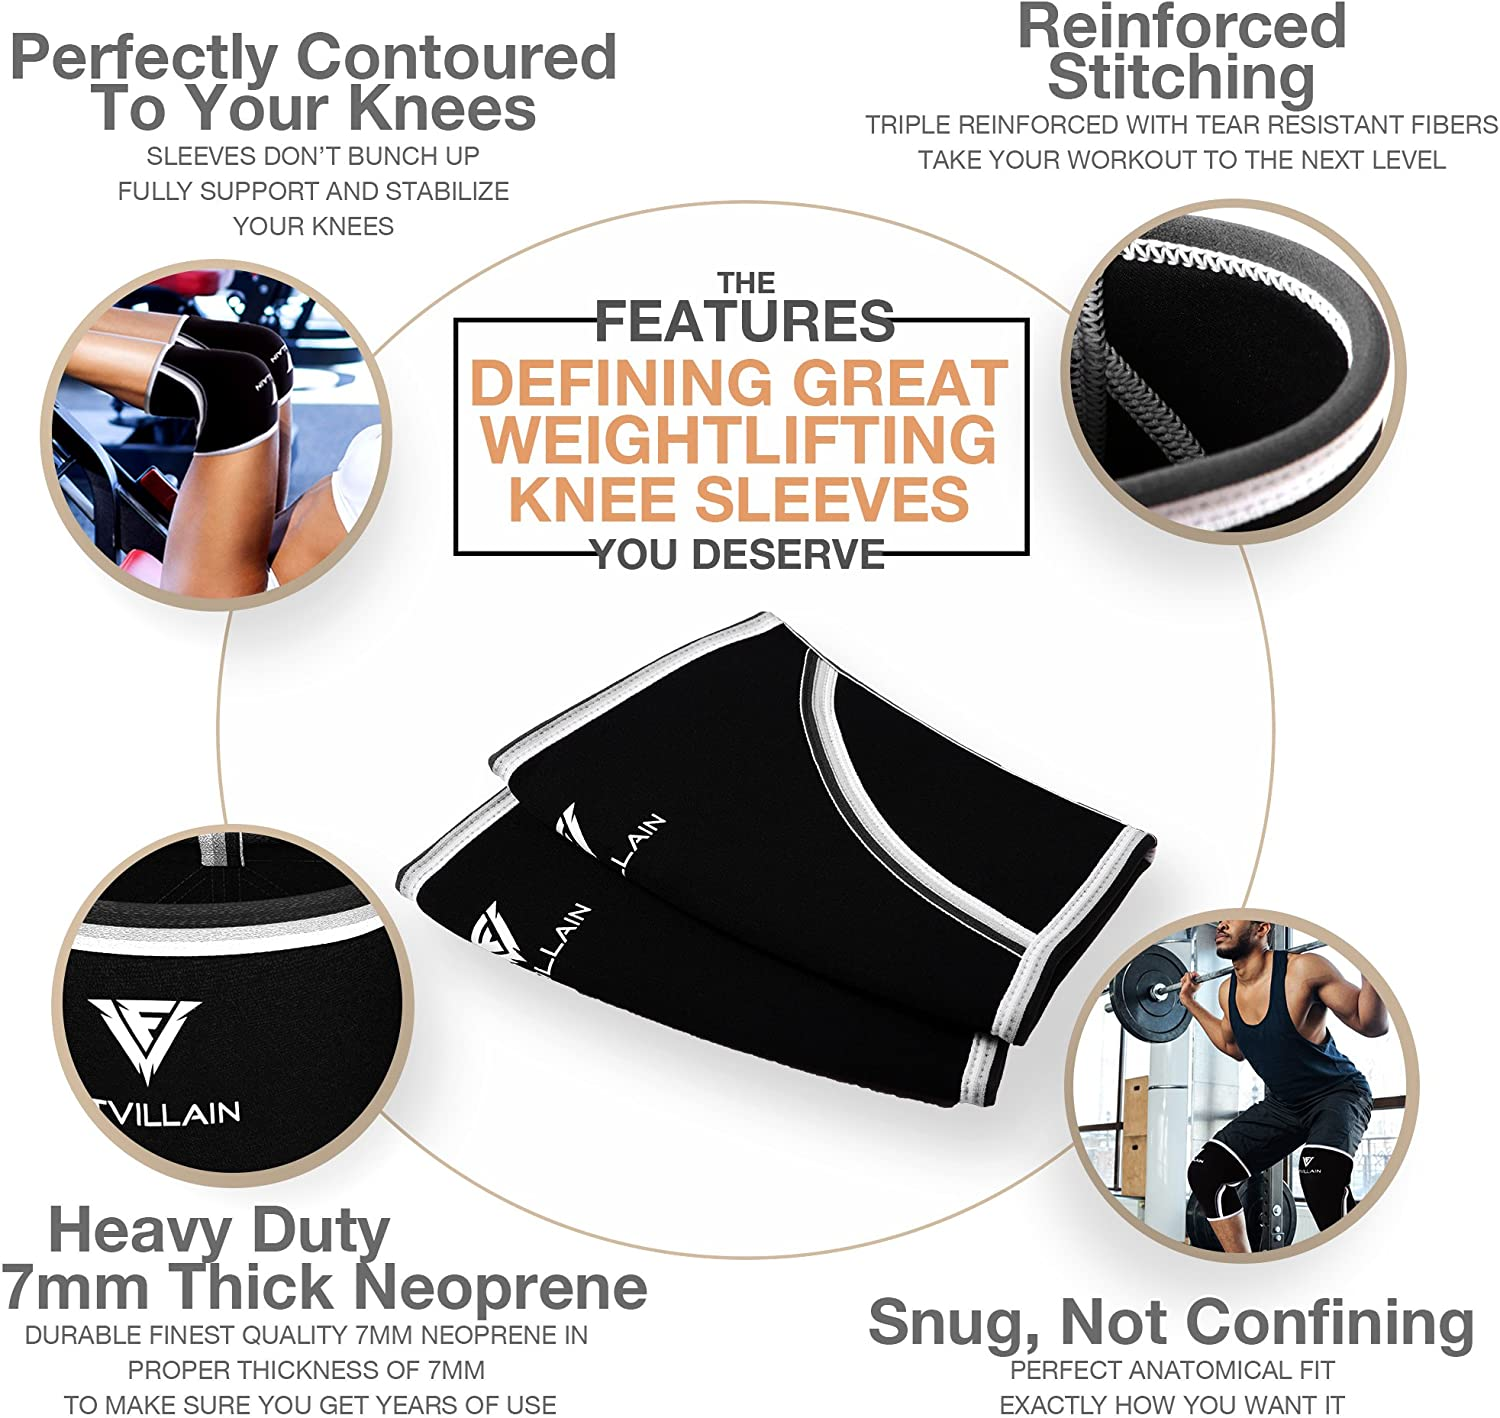 Heavy Squatting 1 Pair Crossfit Men /& Women Deadlift Workout Training 7mm Neoprene Ligament Injury Recovery Guard Gym Knee Compression Support Sleeves for Weight Lifting Powerlifting